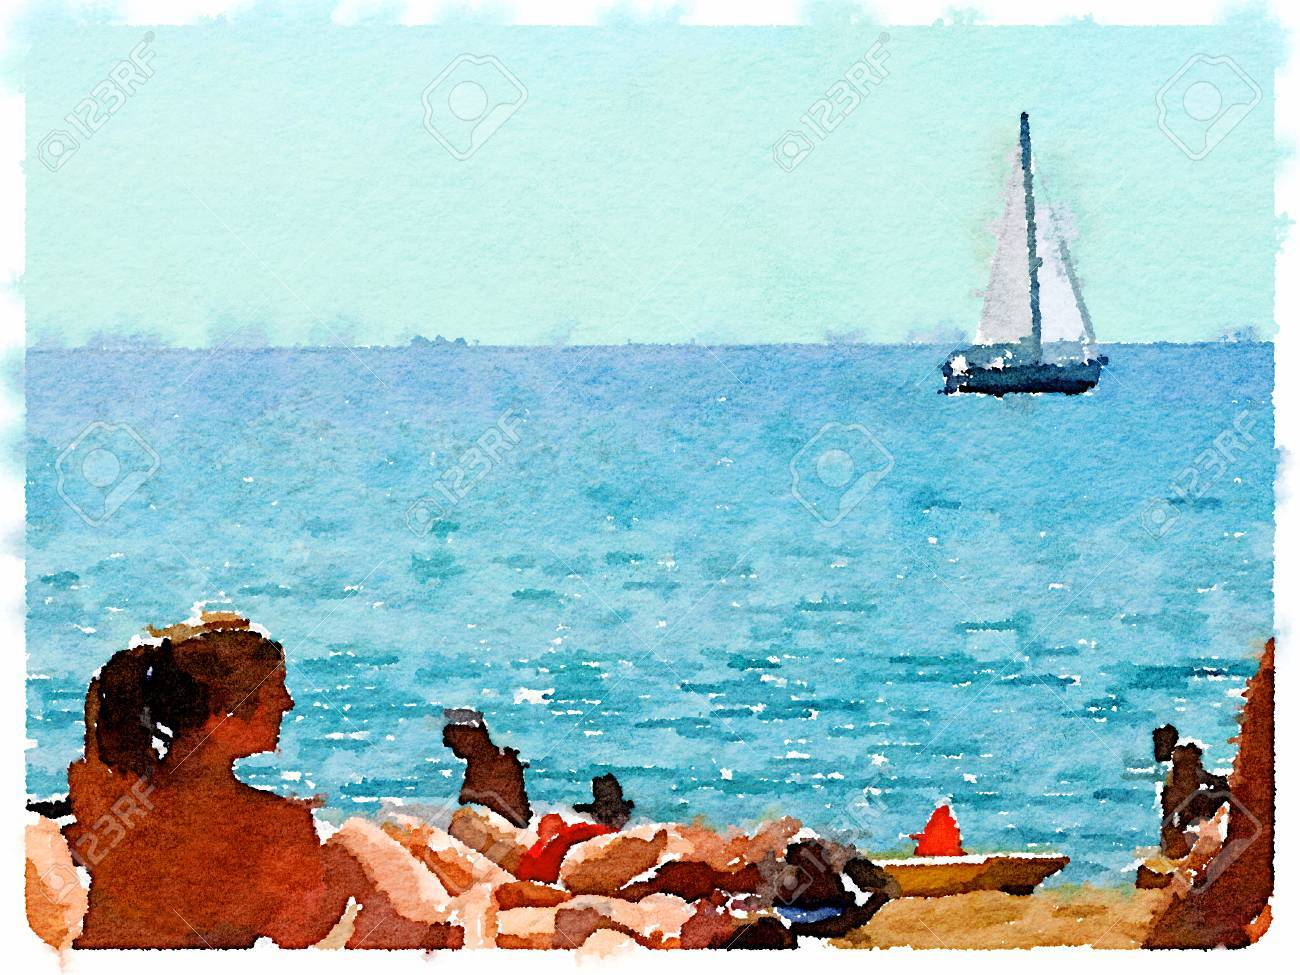 digital watercolor painting of people on the sandy beach and stock